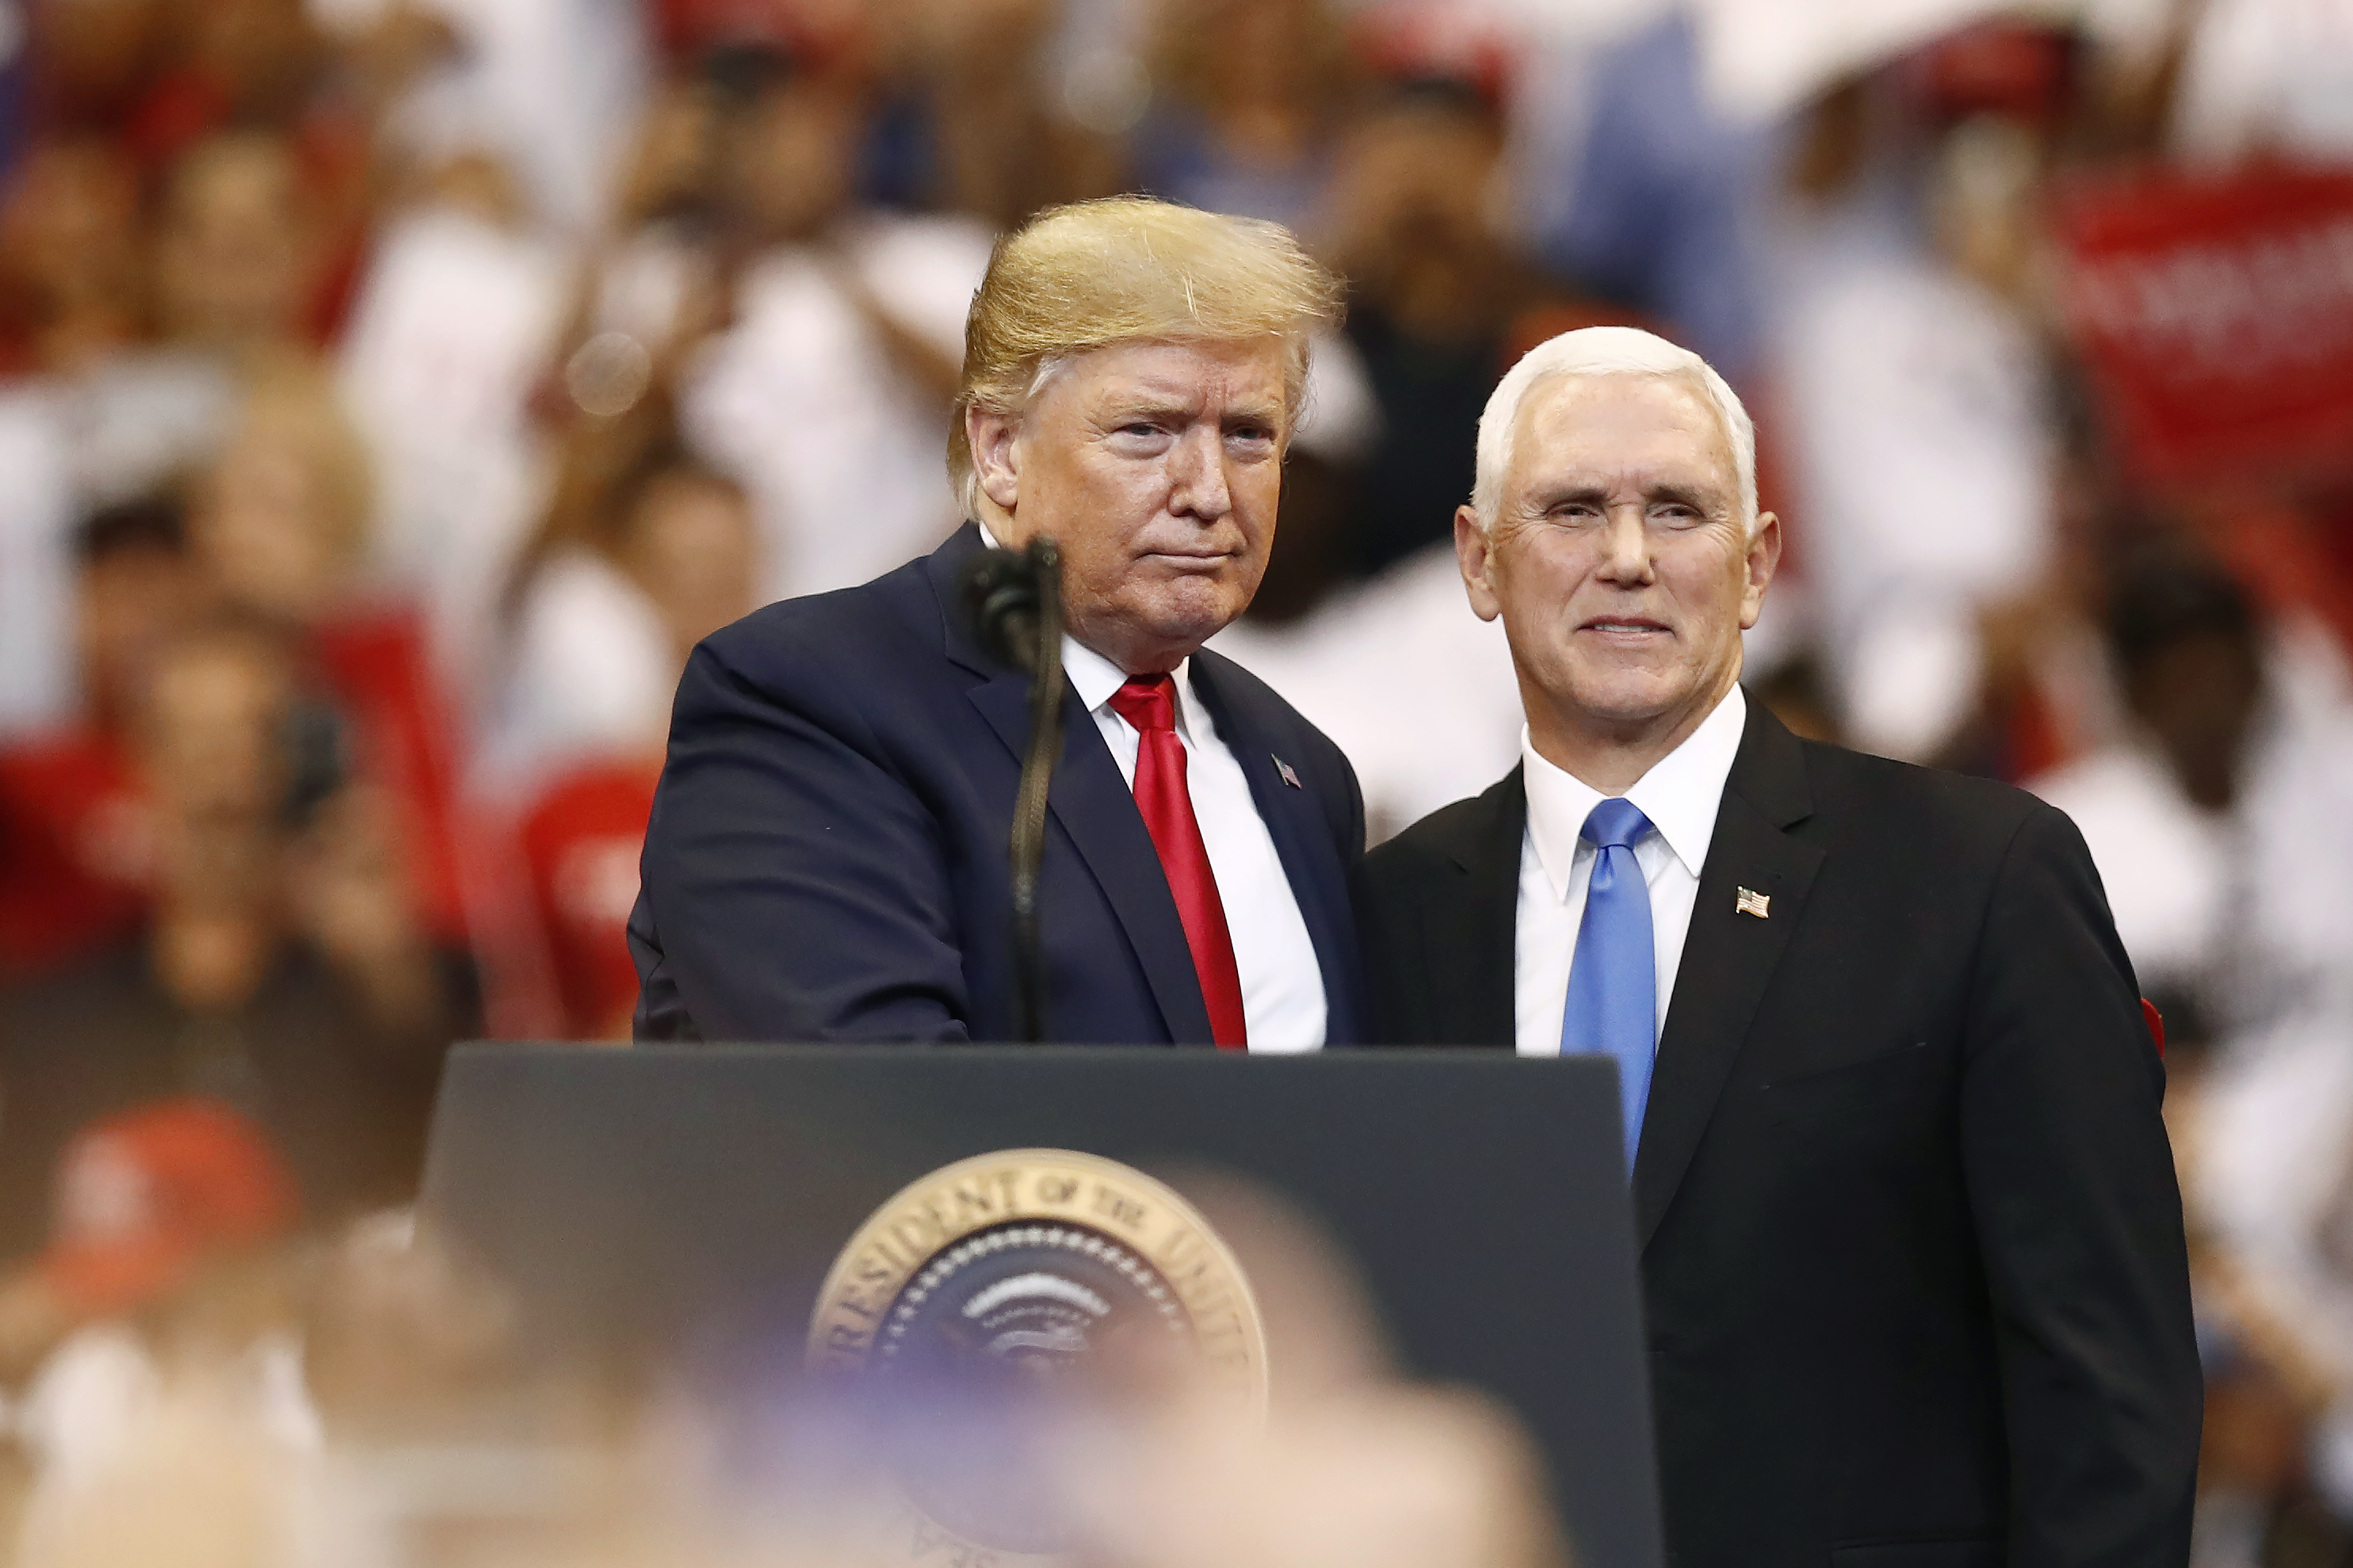 Against reason? US President Donald Trump and Vice President Mike Pence at a campaign rally on November 26, 2019